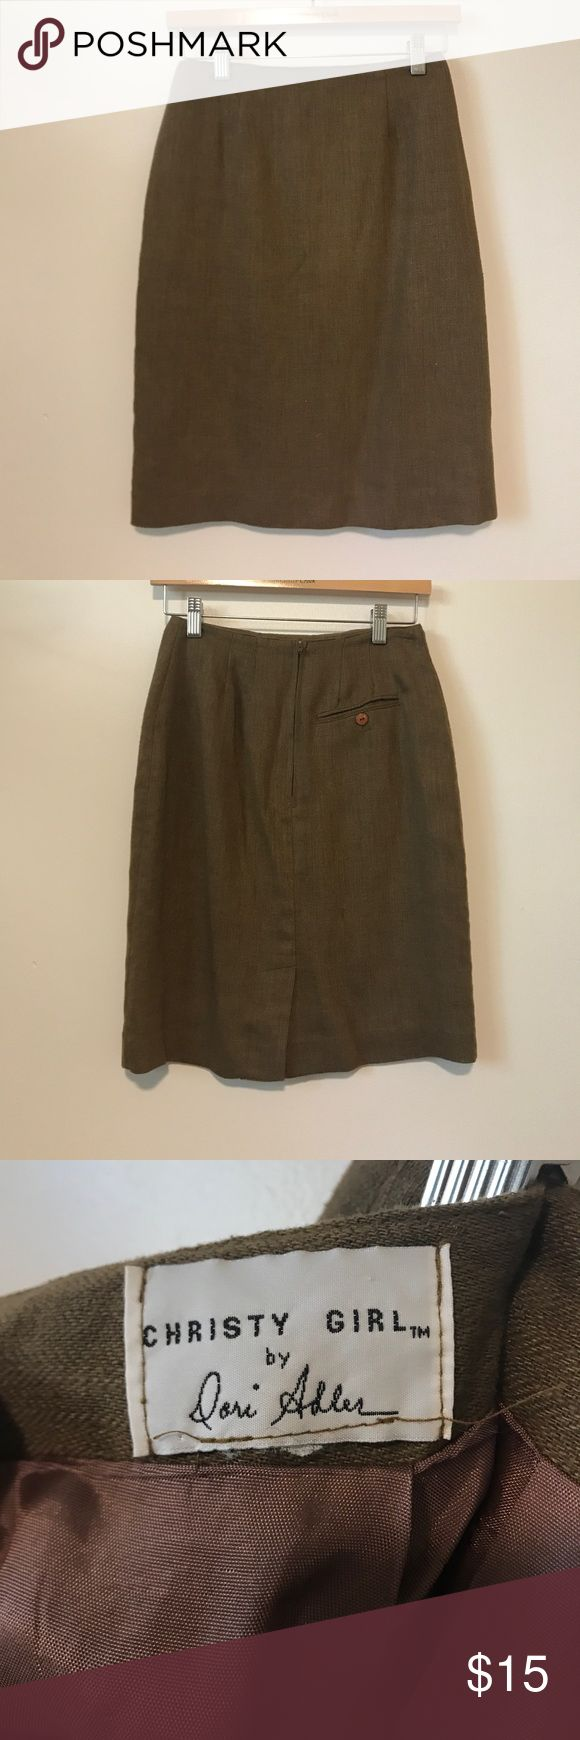 """Vintage wool khaki pencil skirt Vintage pencil skirt from """"Christy Girl by Dori Adler"""". Fabric is a khaki, greenish color with a herringbone pattern. Single buttoned pocket in the back. High waisted, hits just above the knee. In excellent used condition. Very slight pilling around the seam (see last picture) Zips up the back. Size tag was cut out, fits like a small (2). Vintage Skirts Pencil"""